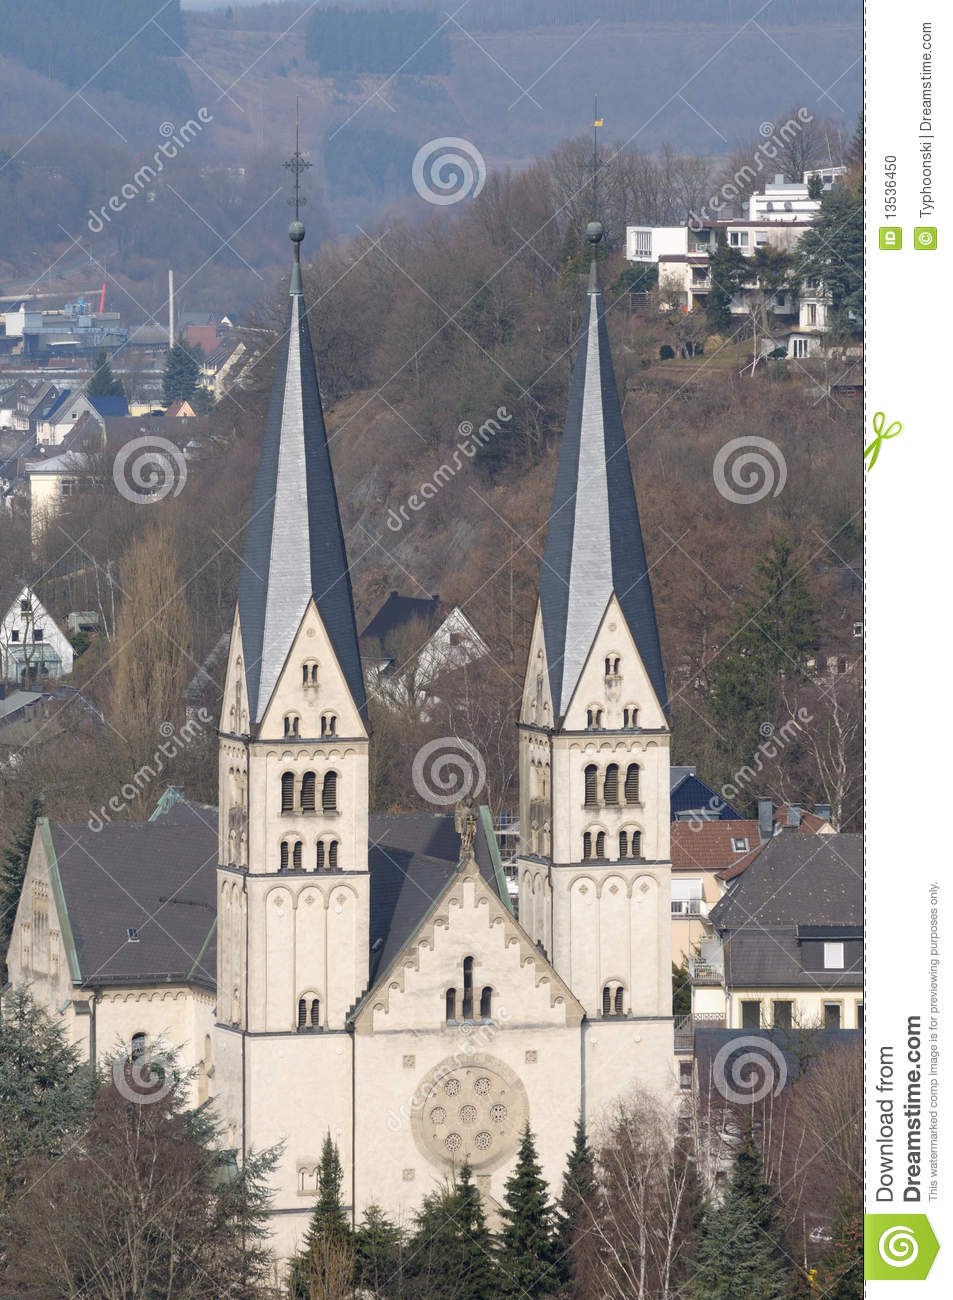 1 458 Siegen Photos Free Royalty Free Stock Photos From Dreamstime